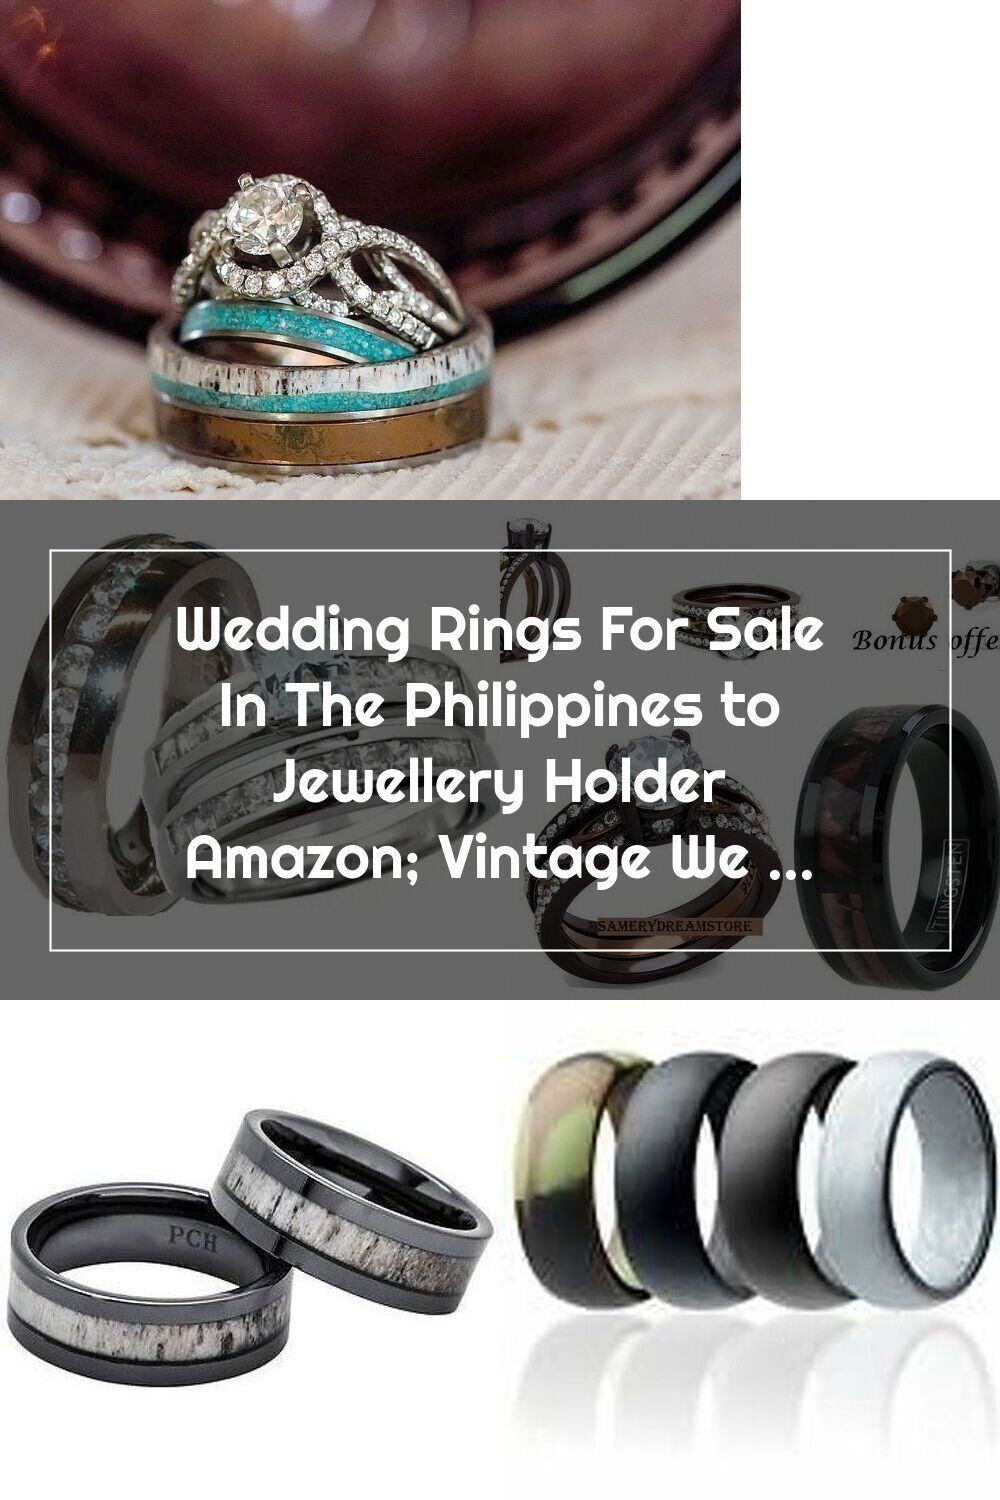 Wedding Rings For Sale In The Philippines to Jewellery